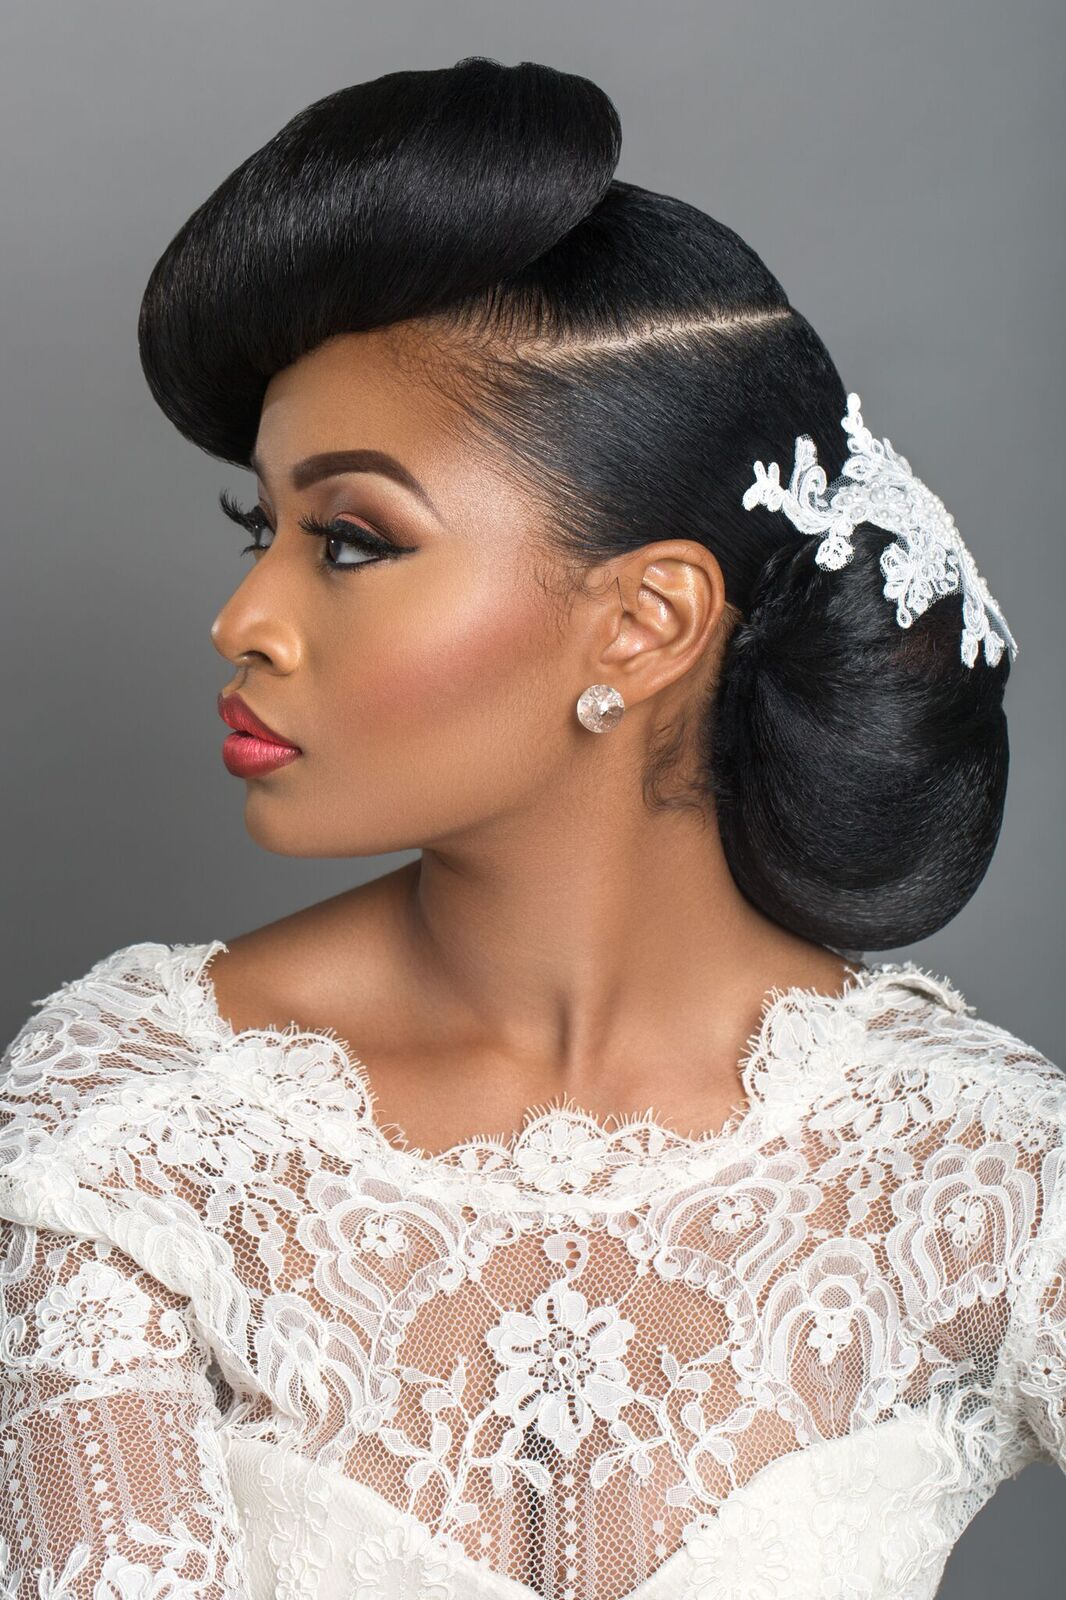 Bridal Beauty Inspiration: 'From Retro to Afro' Photo